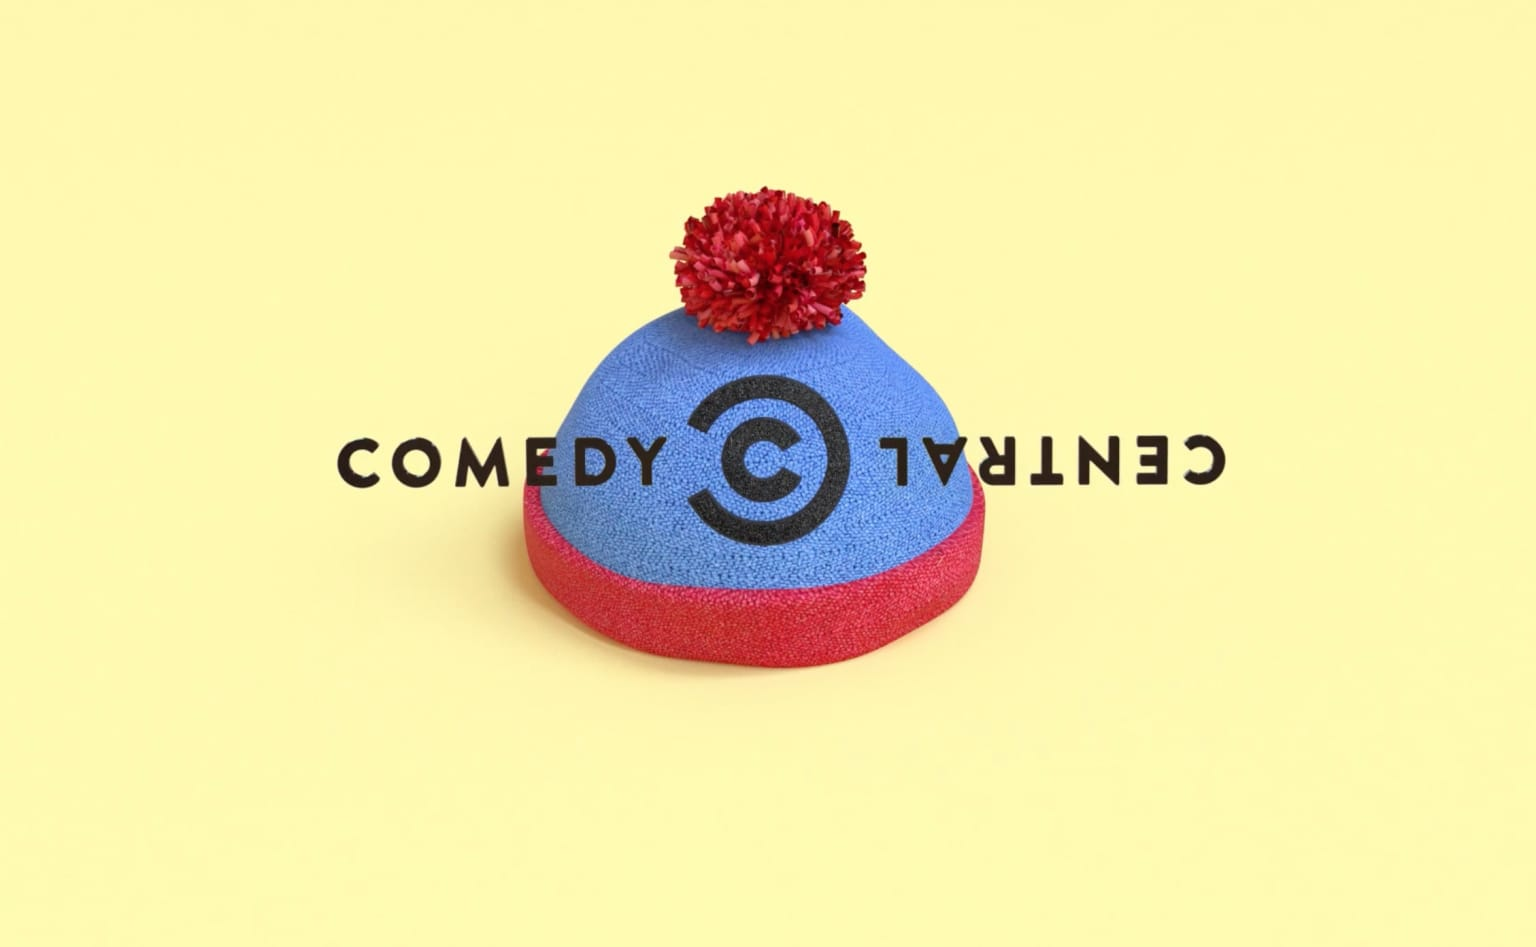 Comedy Central Station IDs